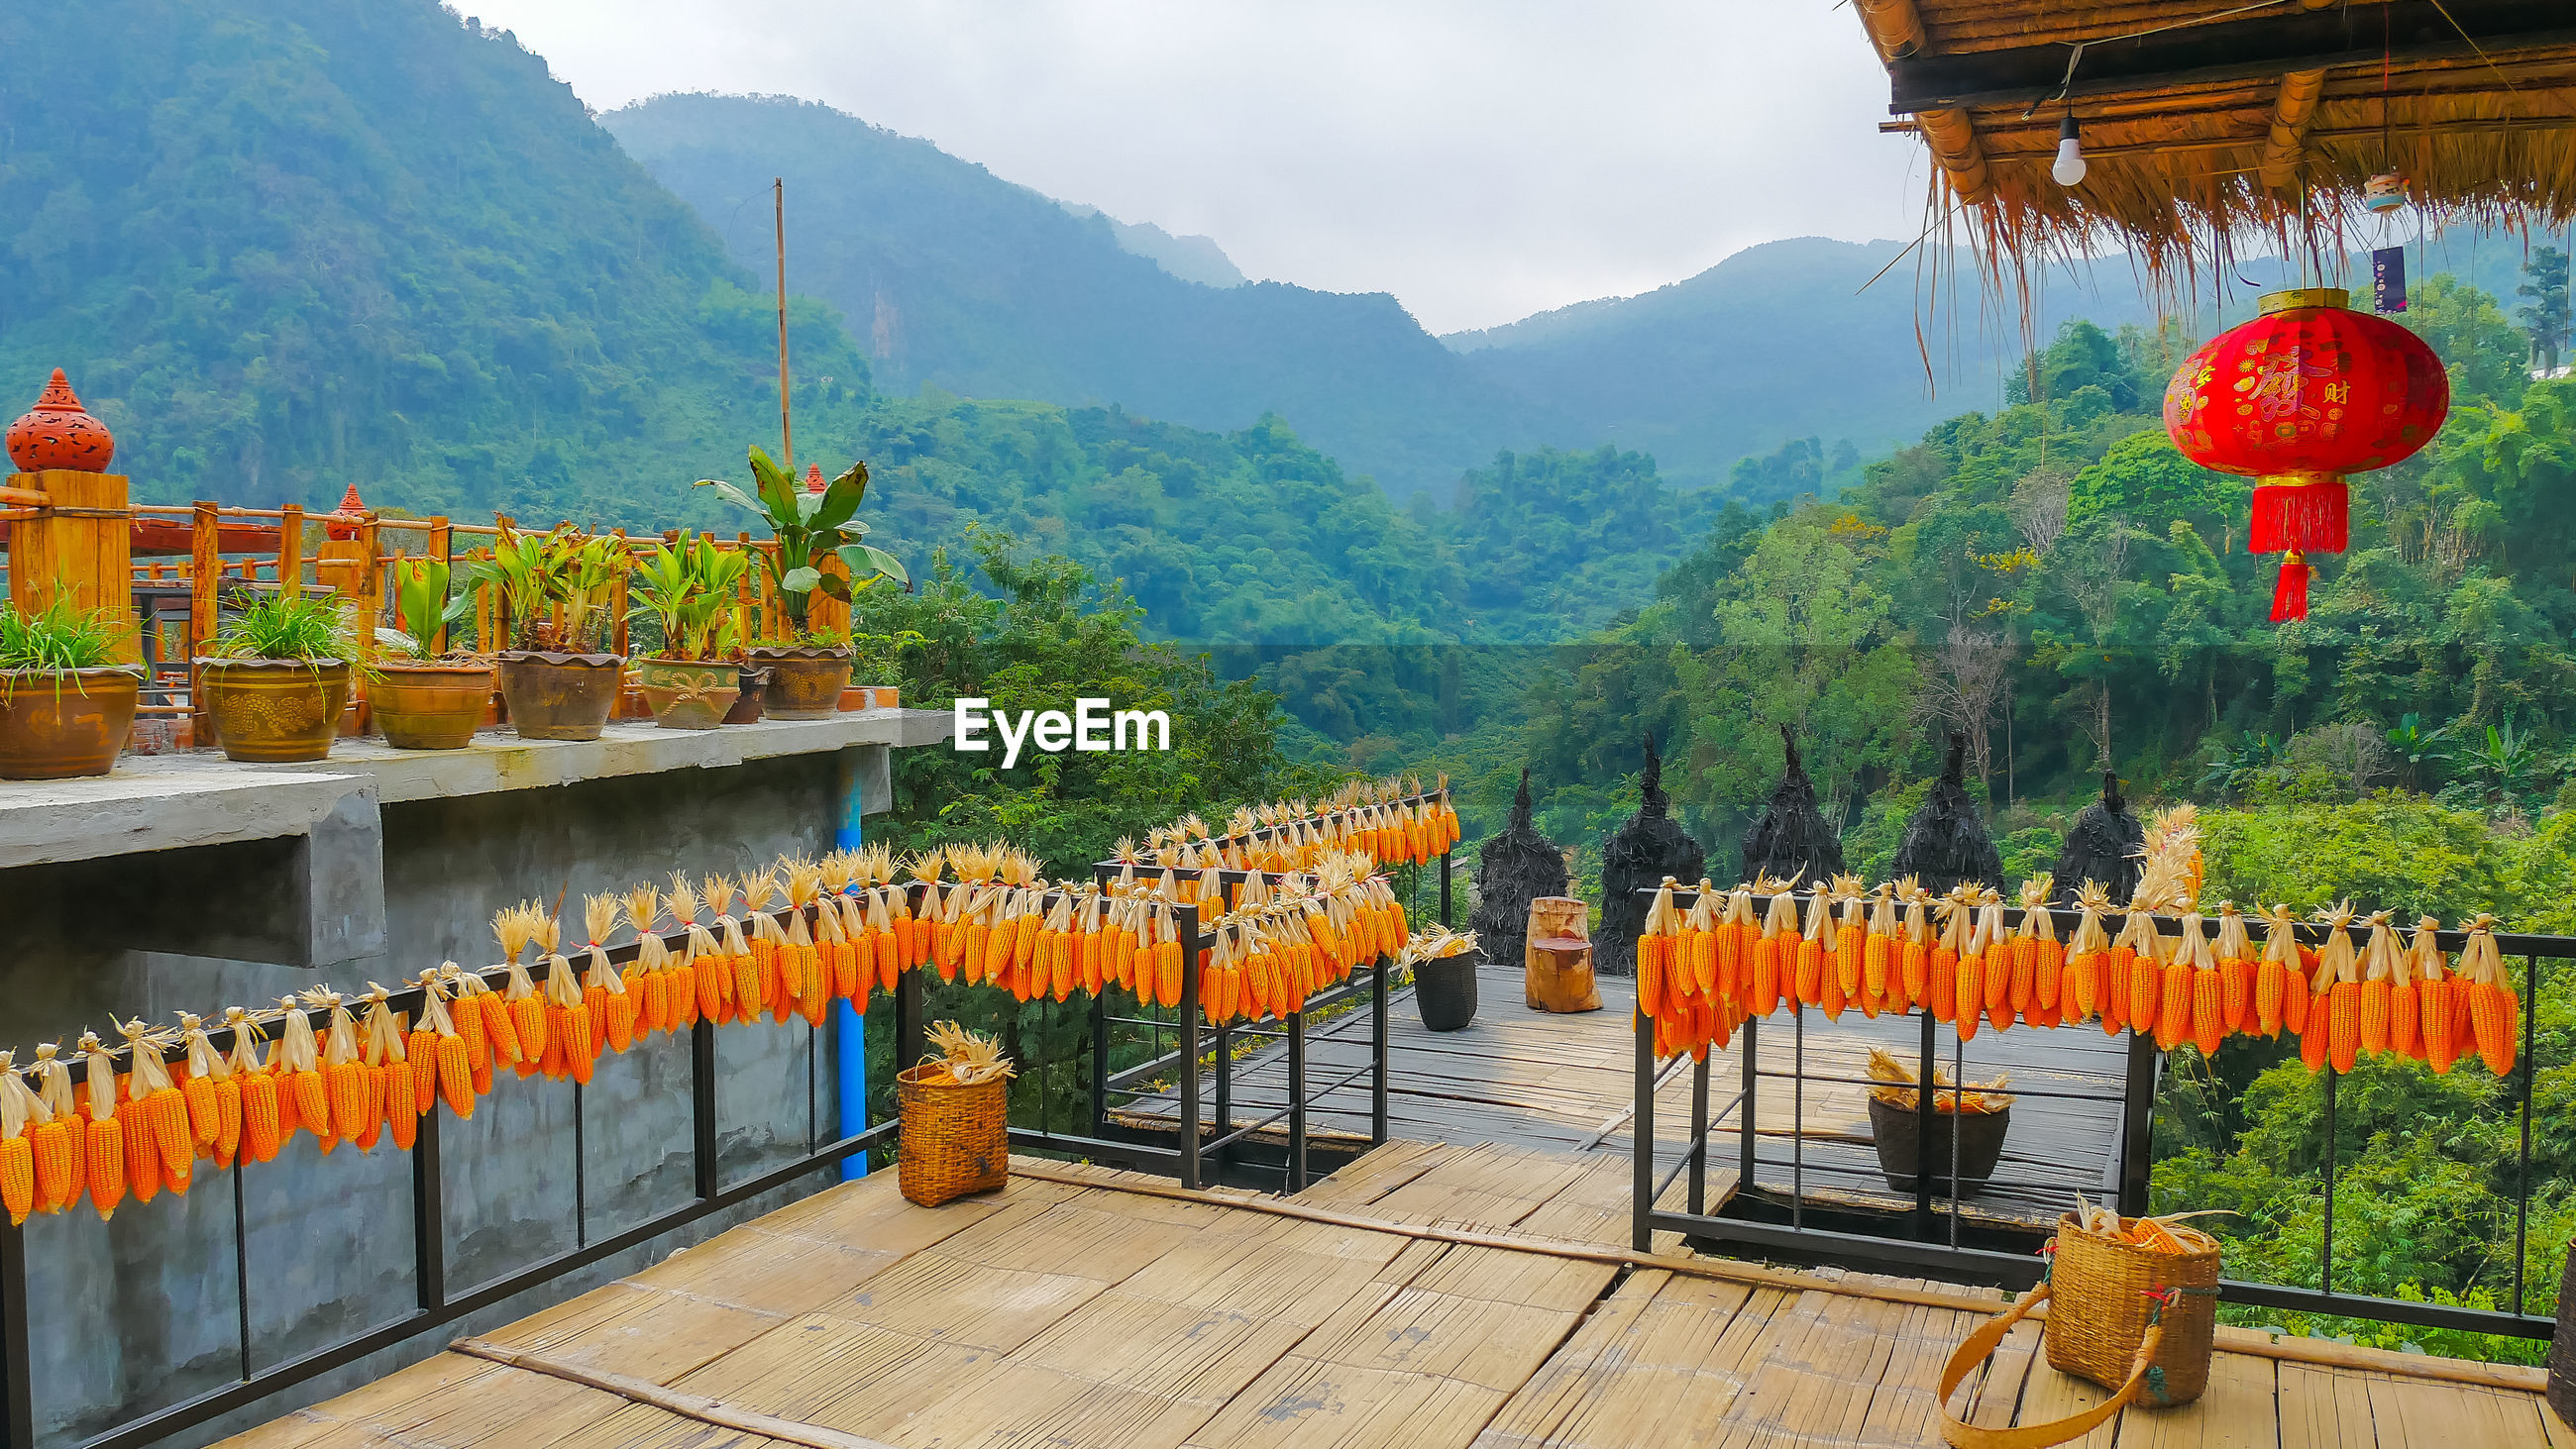 Corns decorated on railings of terrace against mountains